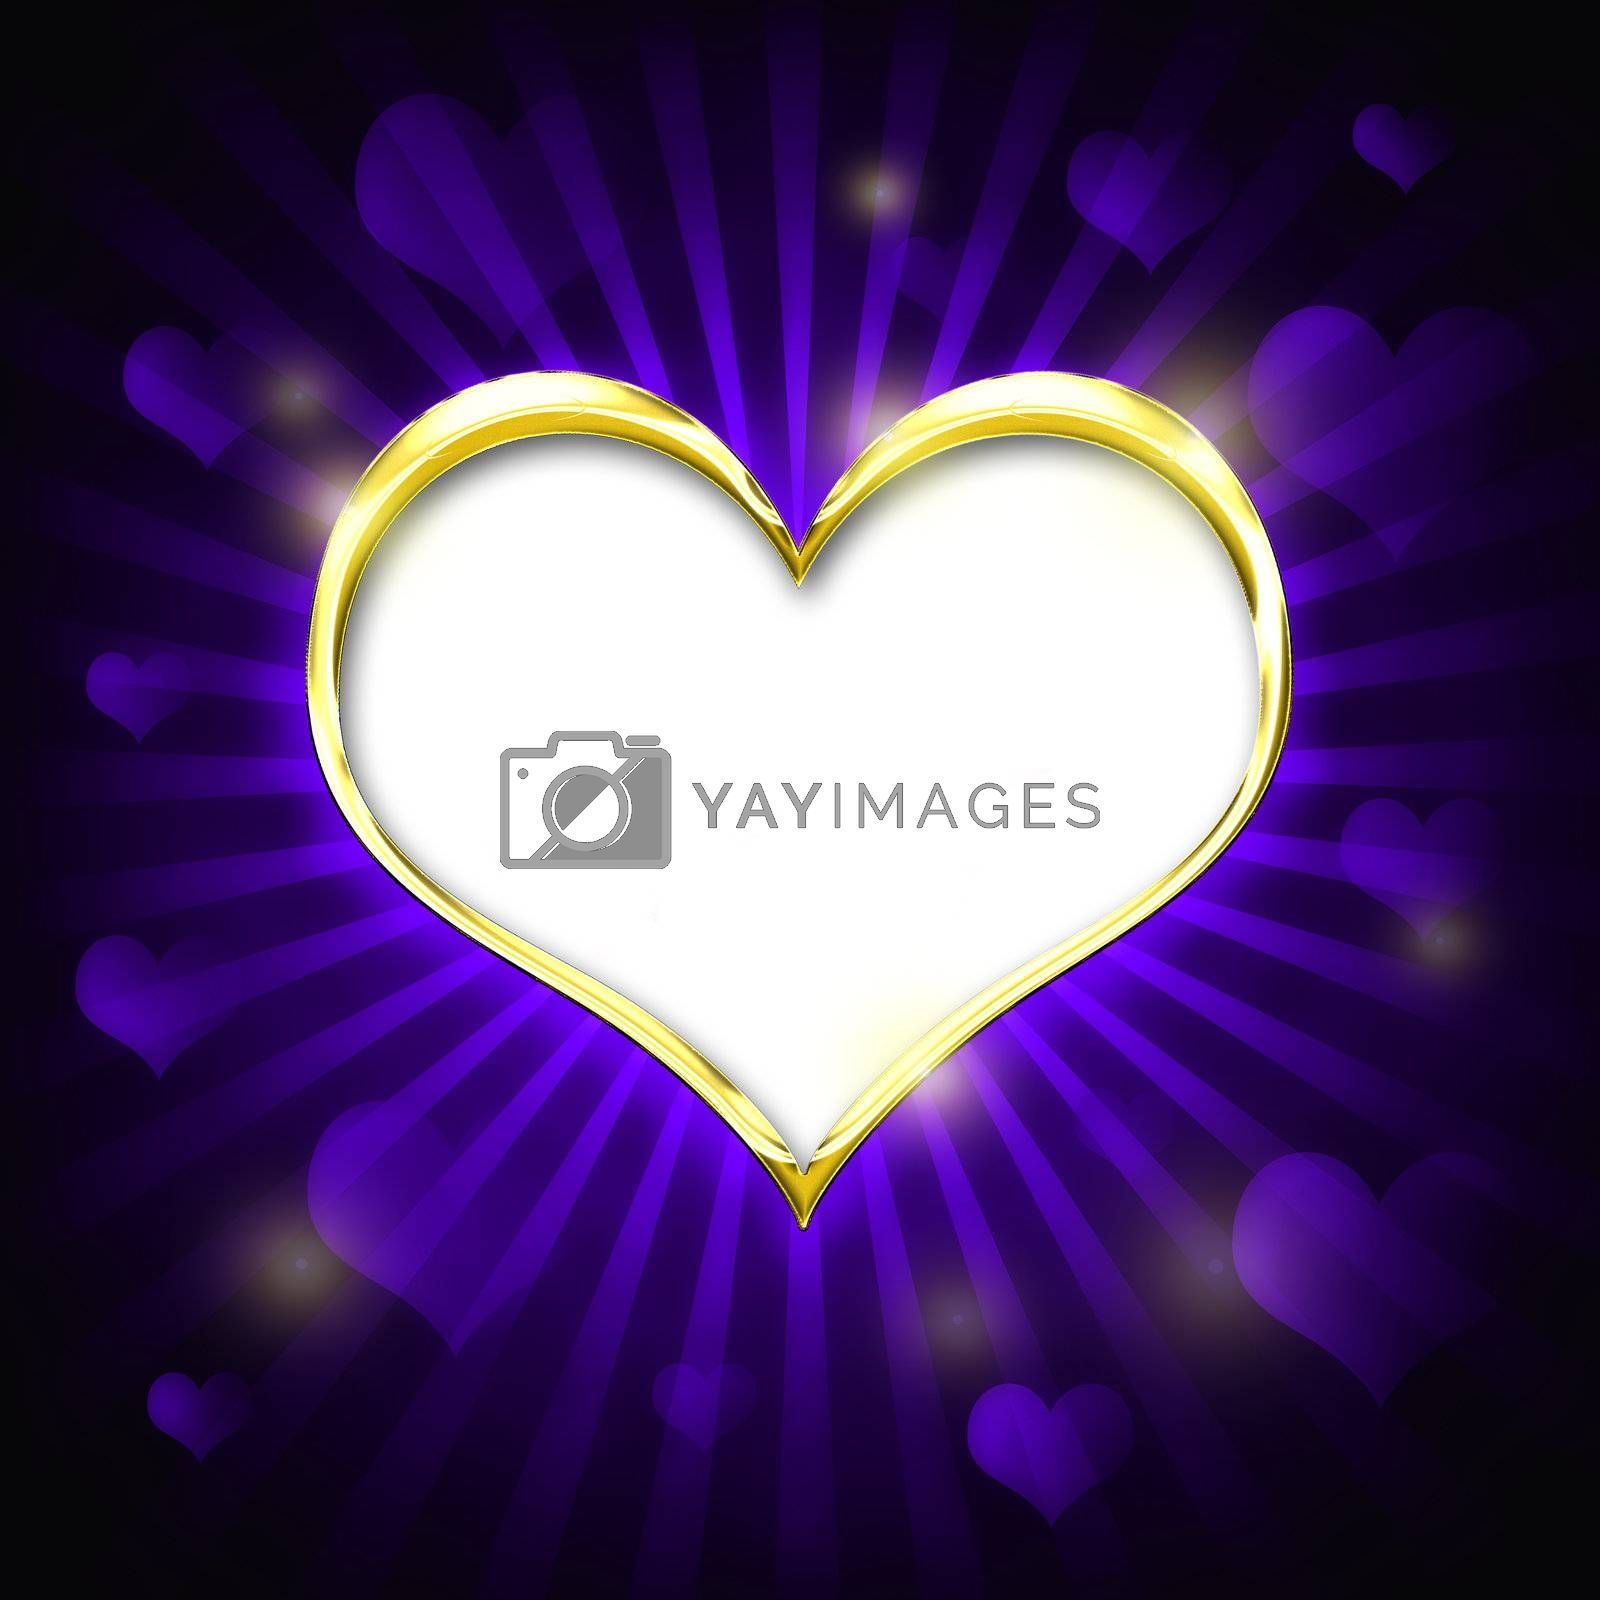 Valenties Day Card with a big golden heart and many smaller hearts on a purple background